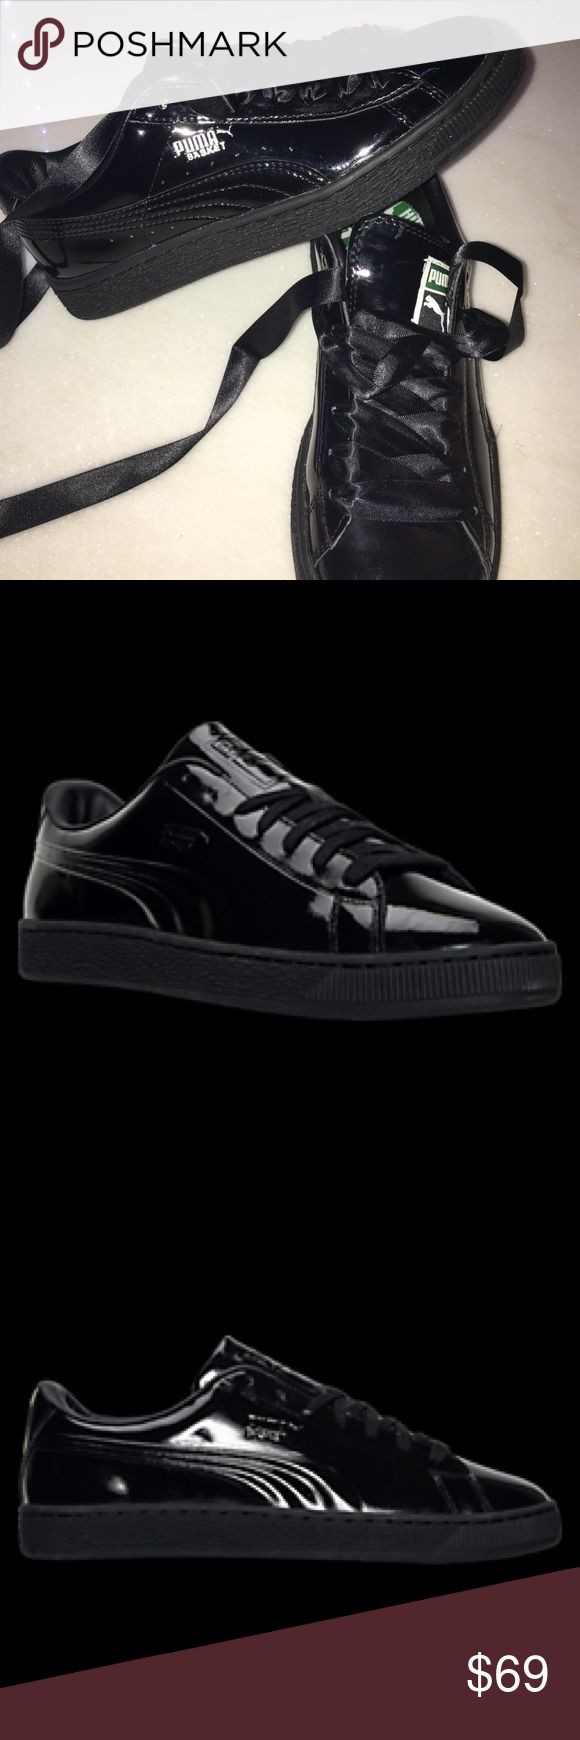 Puma Patent Black Rihanna Sneakers New!! Never worn!! Does not come with the exact lace you see in this picture, but it comes with normal lace. The size is 6.5 but fits a 7 perfectly! I will take reasonable offers😊 lmk if you have any questions💖 Puma Shoes Sneakers